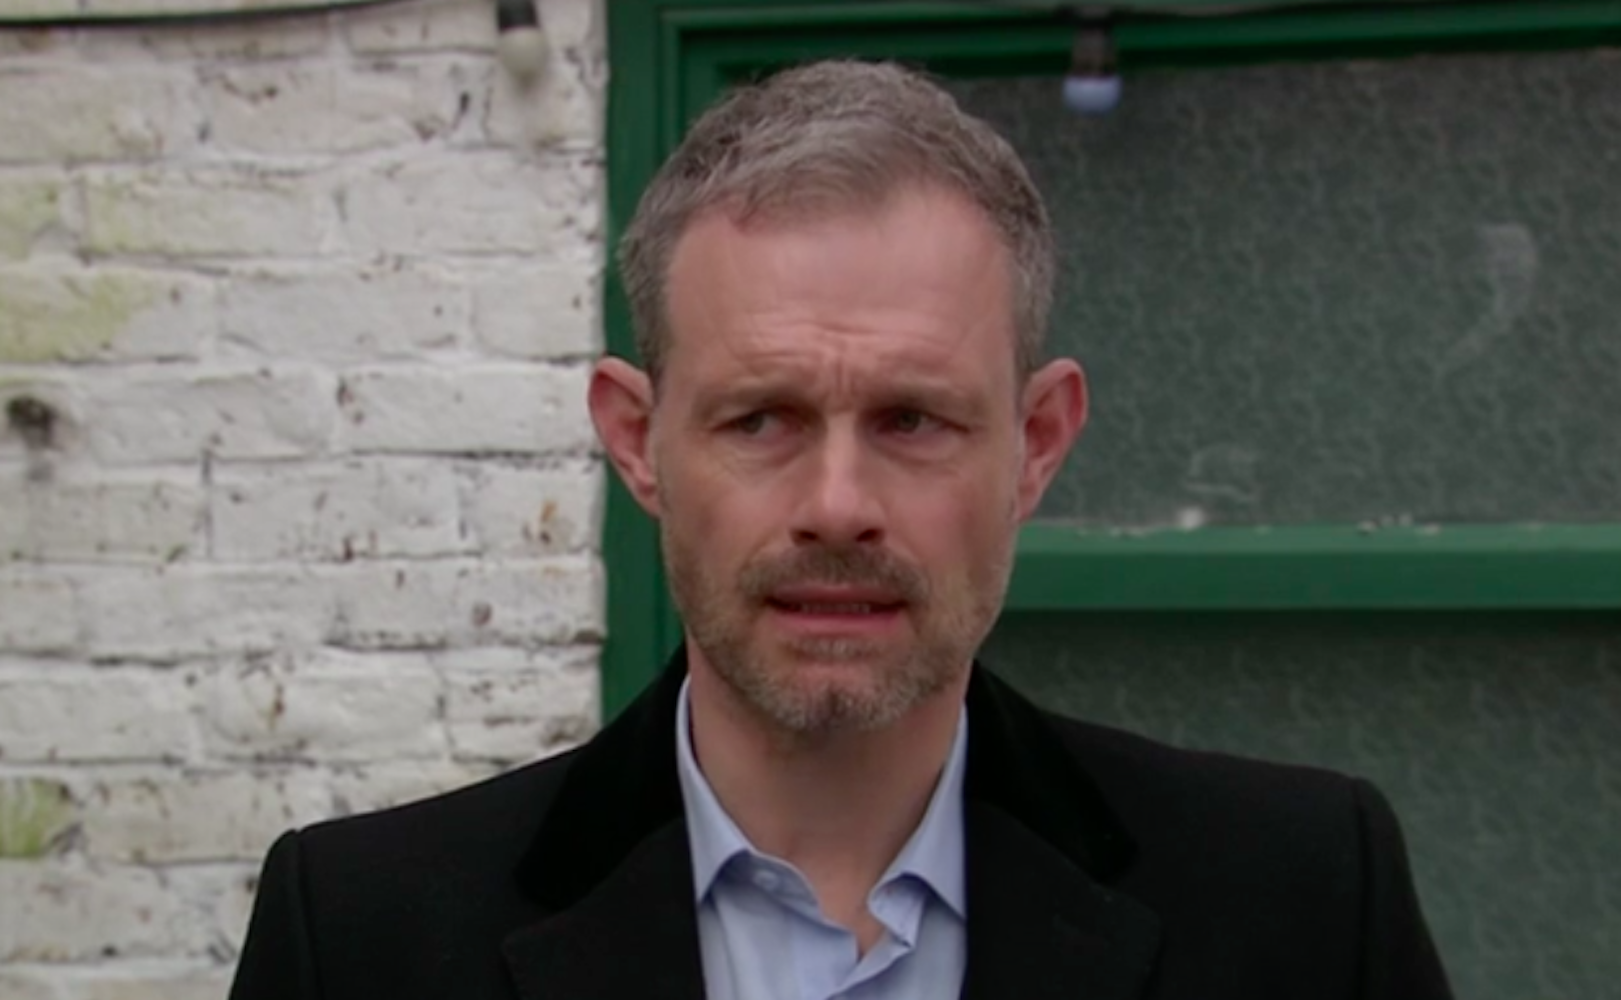 coronation street's nick tilsley breaks down